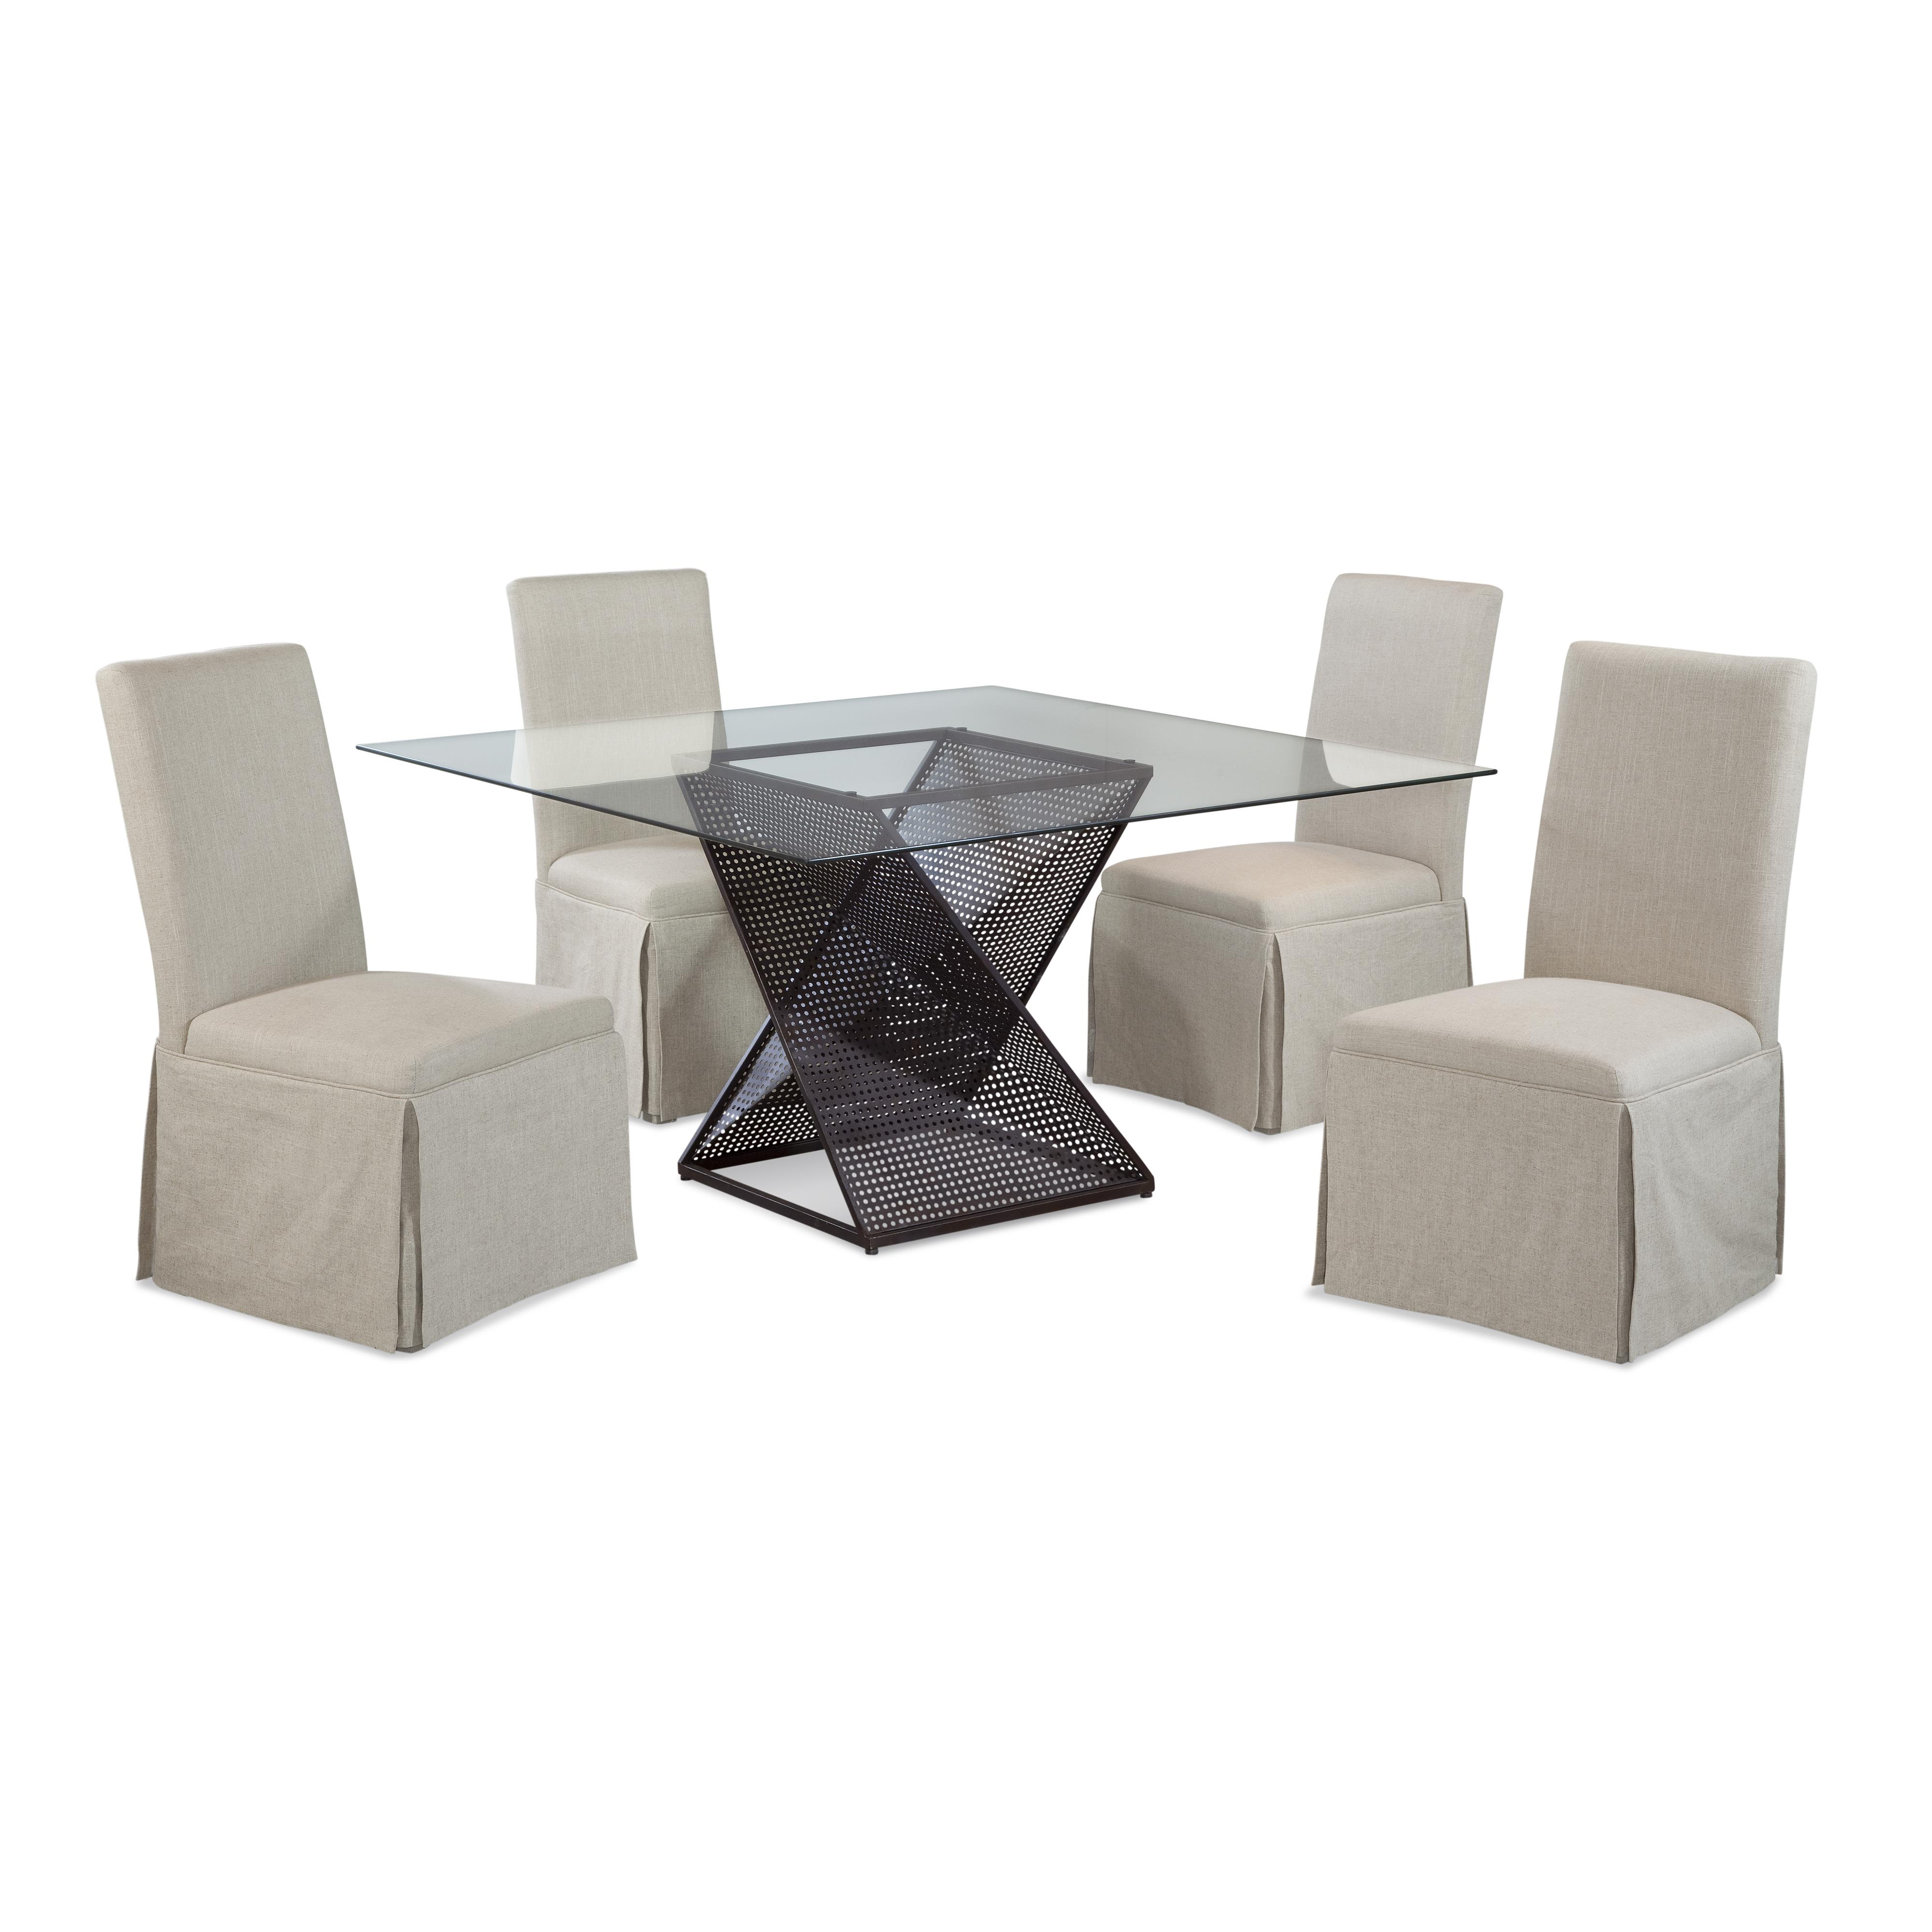 Belgian Luxe Bolton Casual Dining Set by Bassett Mirror at Alison Craig Home Furnishings